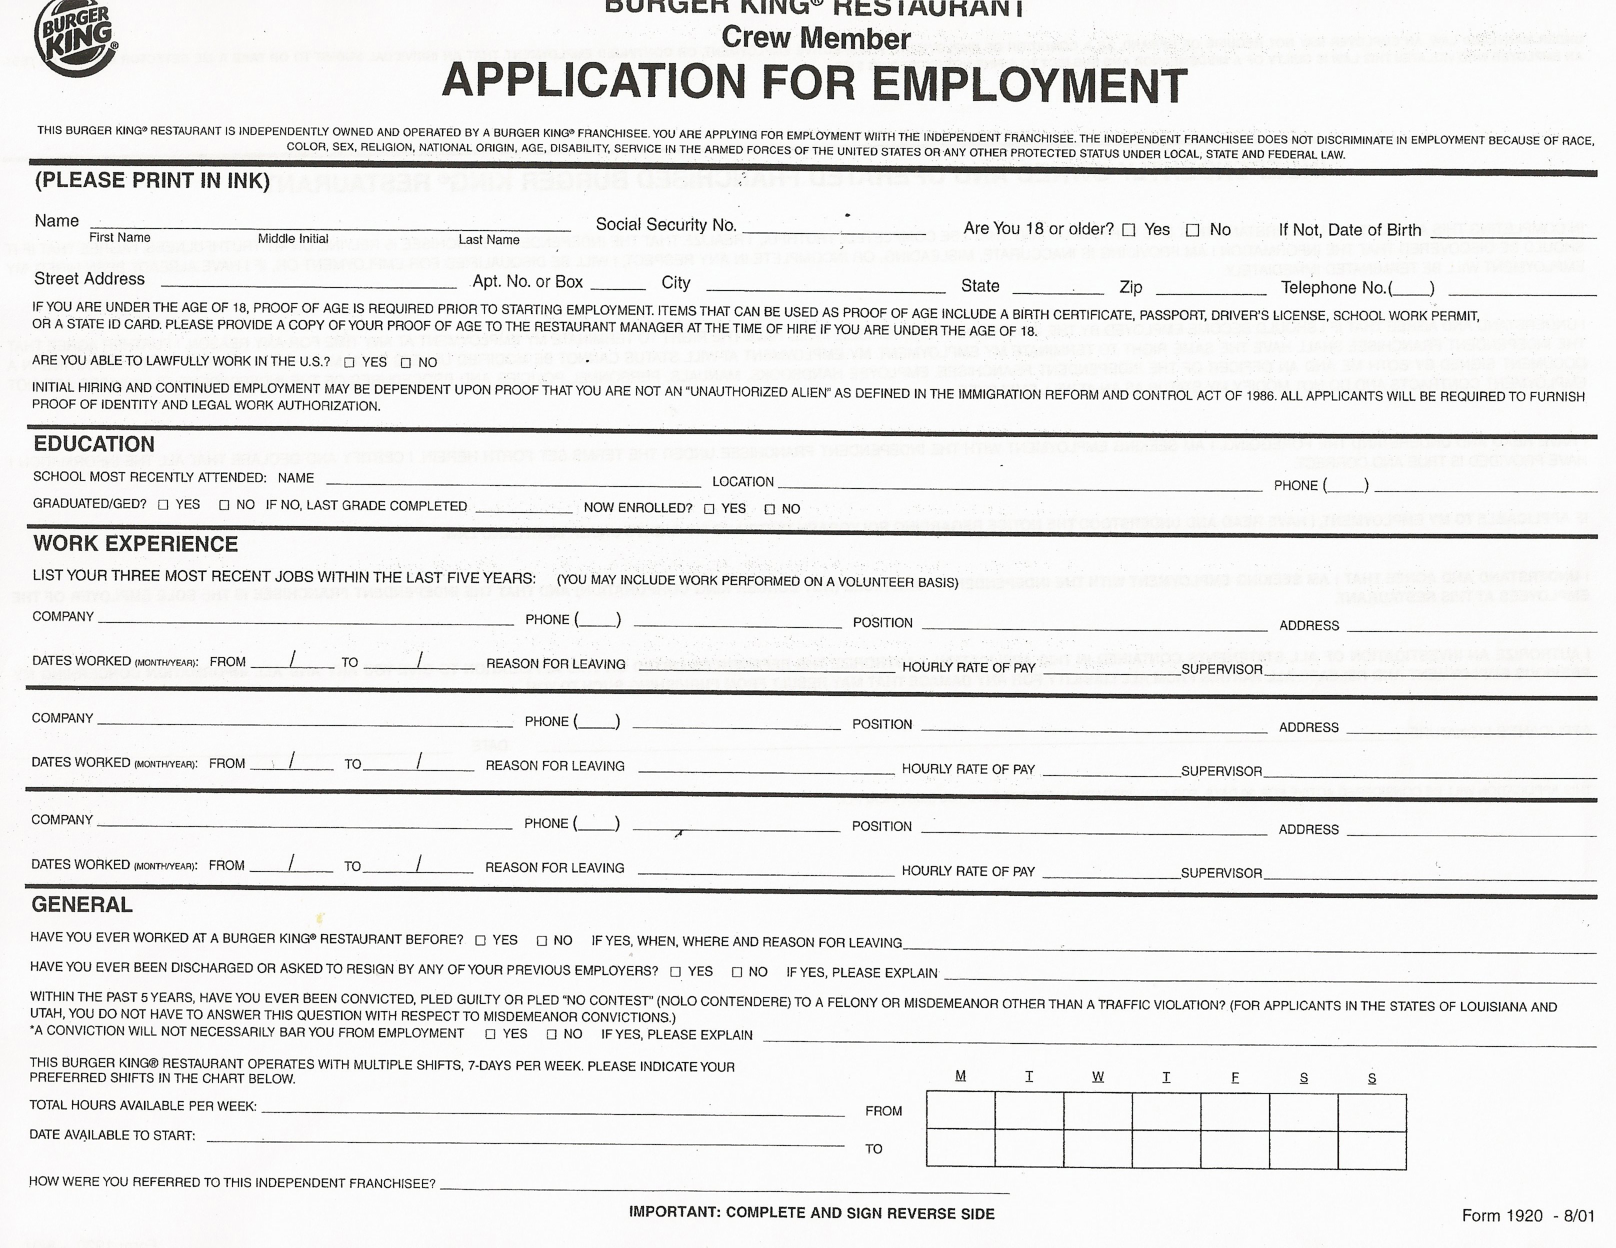 f886b6c24c221b8eb598cb4ea50e5428 Job Application Form Pdf Fil A on dunkin donuts, pizza hut, panera bread, letter format sample, printable basic, print out, dollar tree,